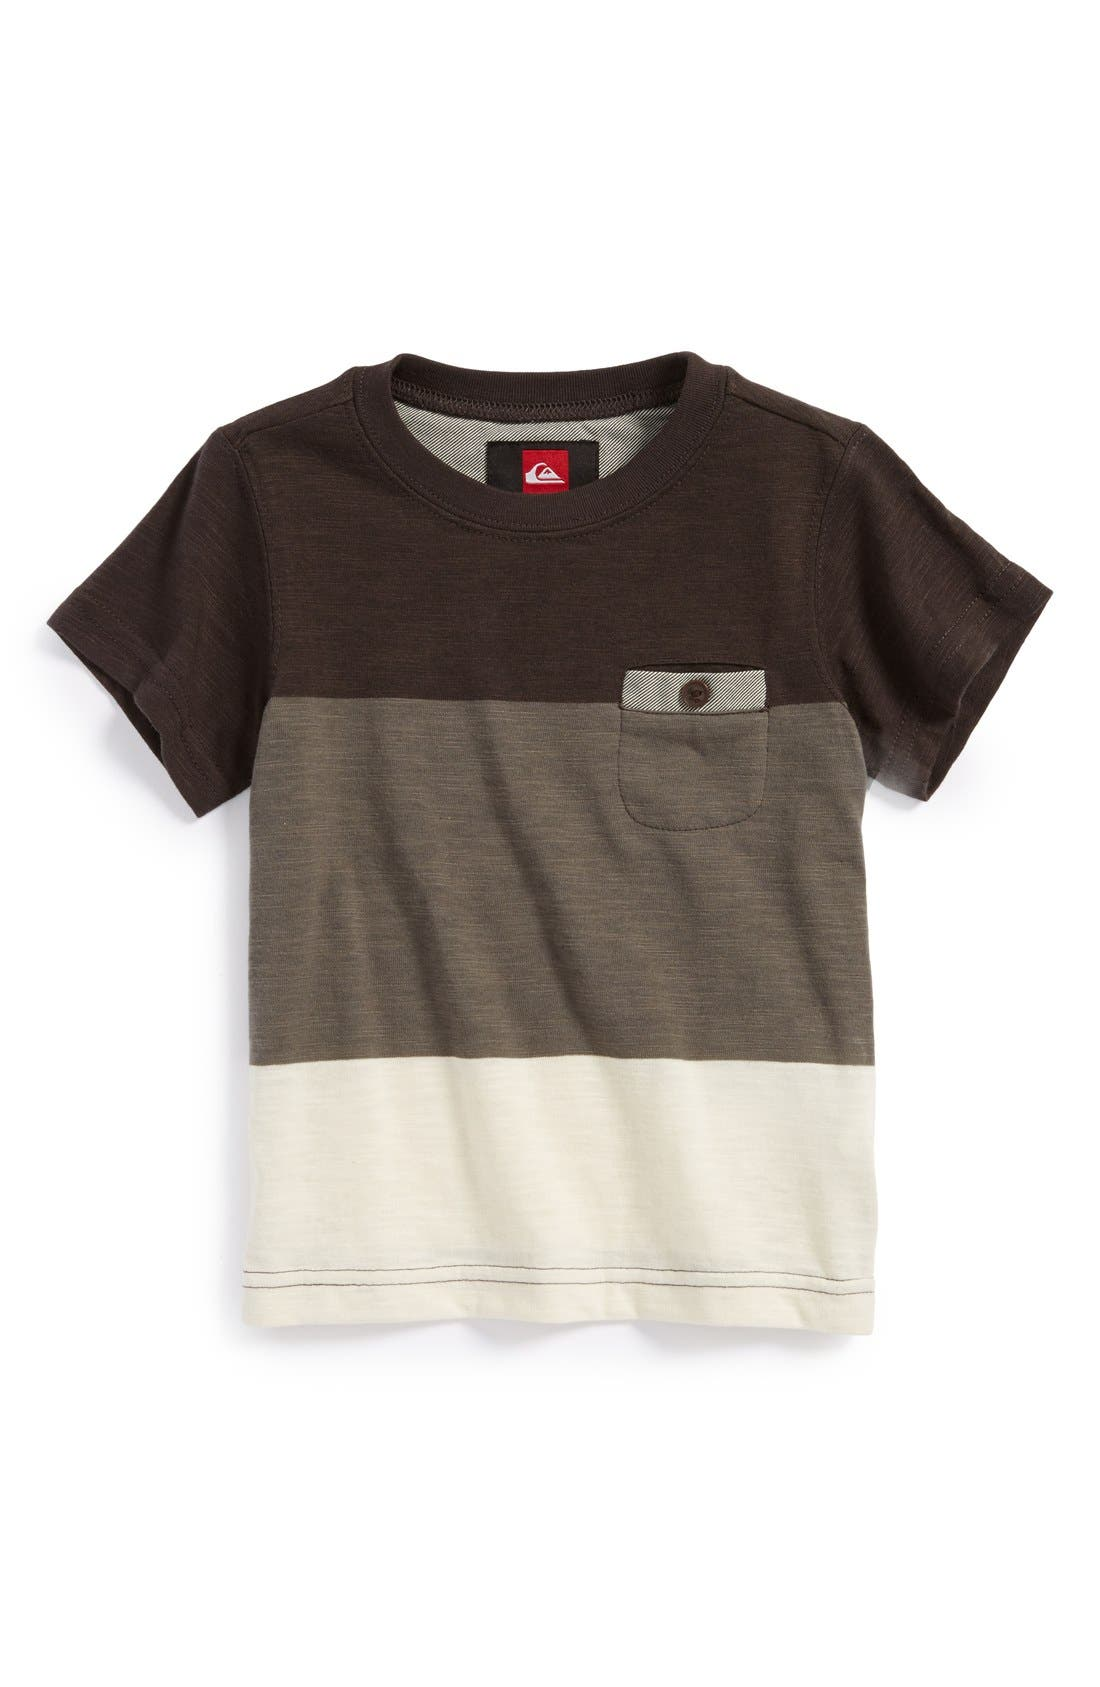 Main Image - Quiksilver 'Half Pint' Slub T-Shirt (Toddler Boys)